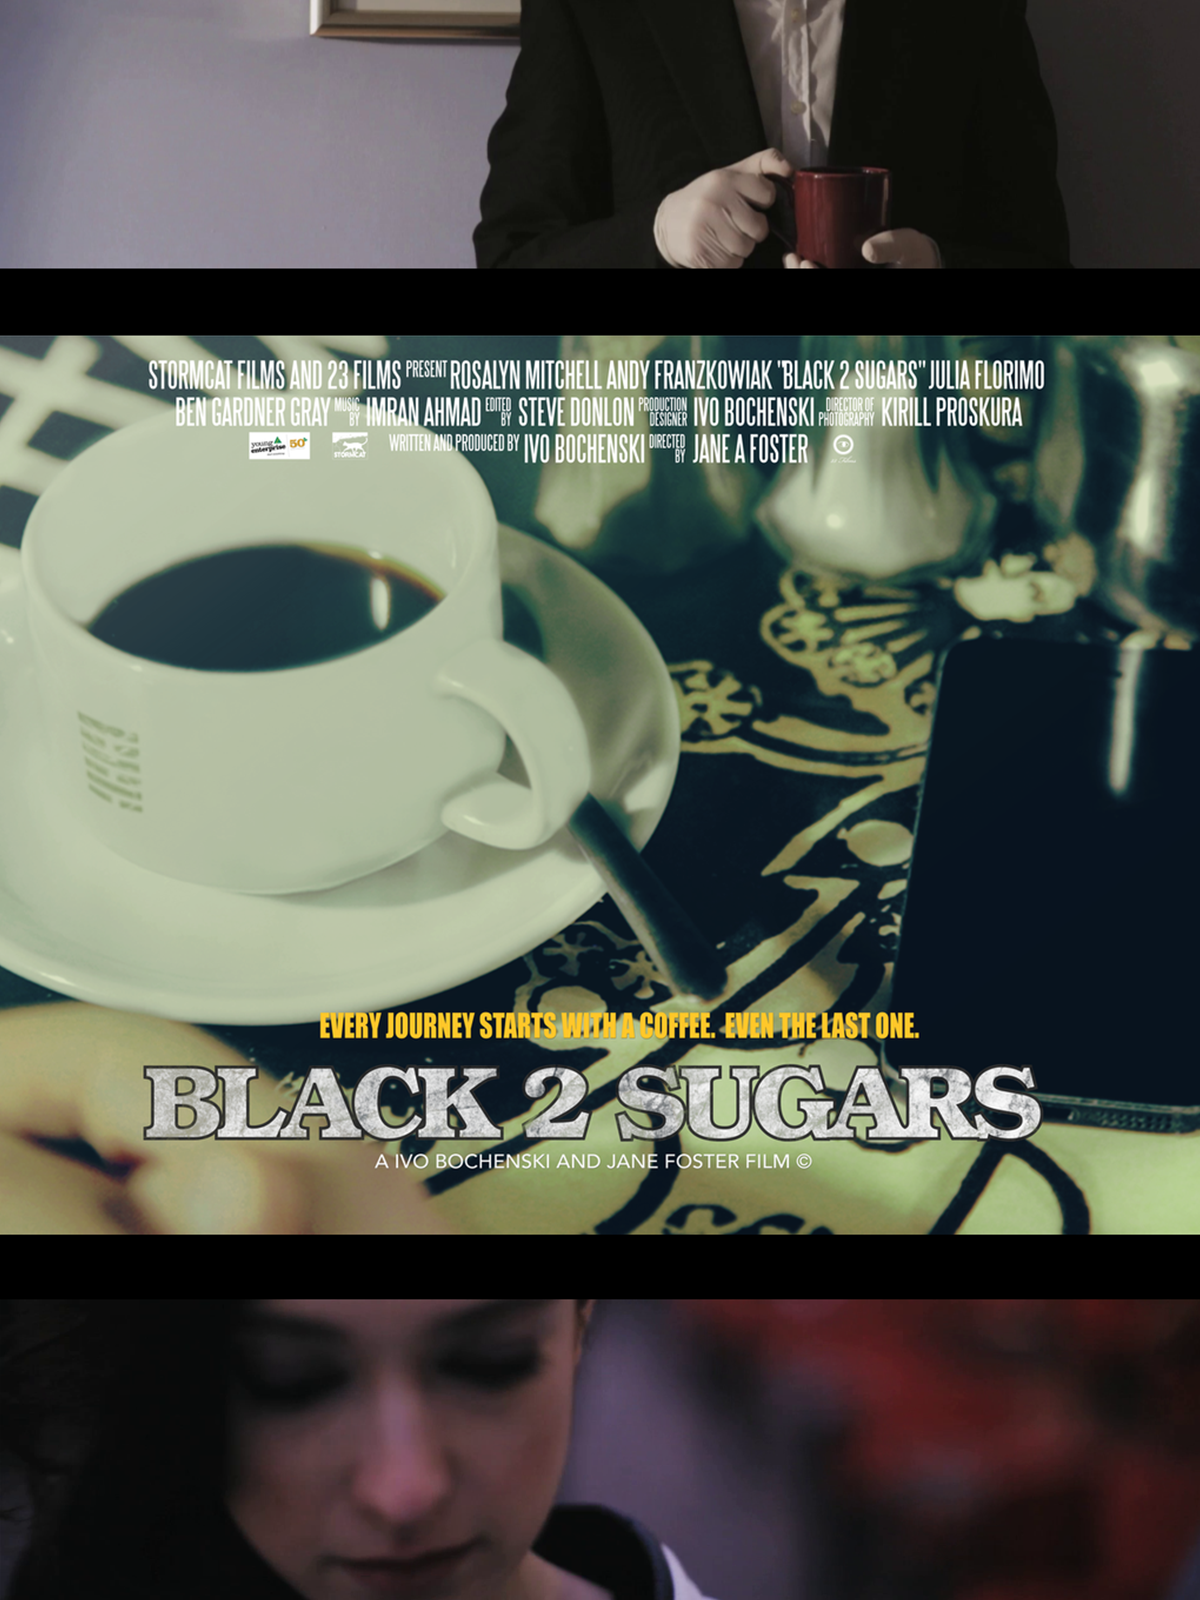 BLACK 2 SUGARS 1200X1600 ARTWORK